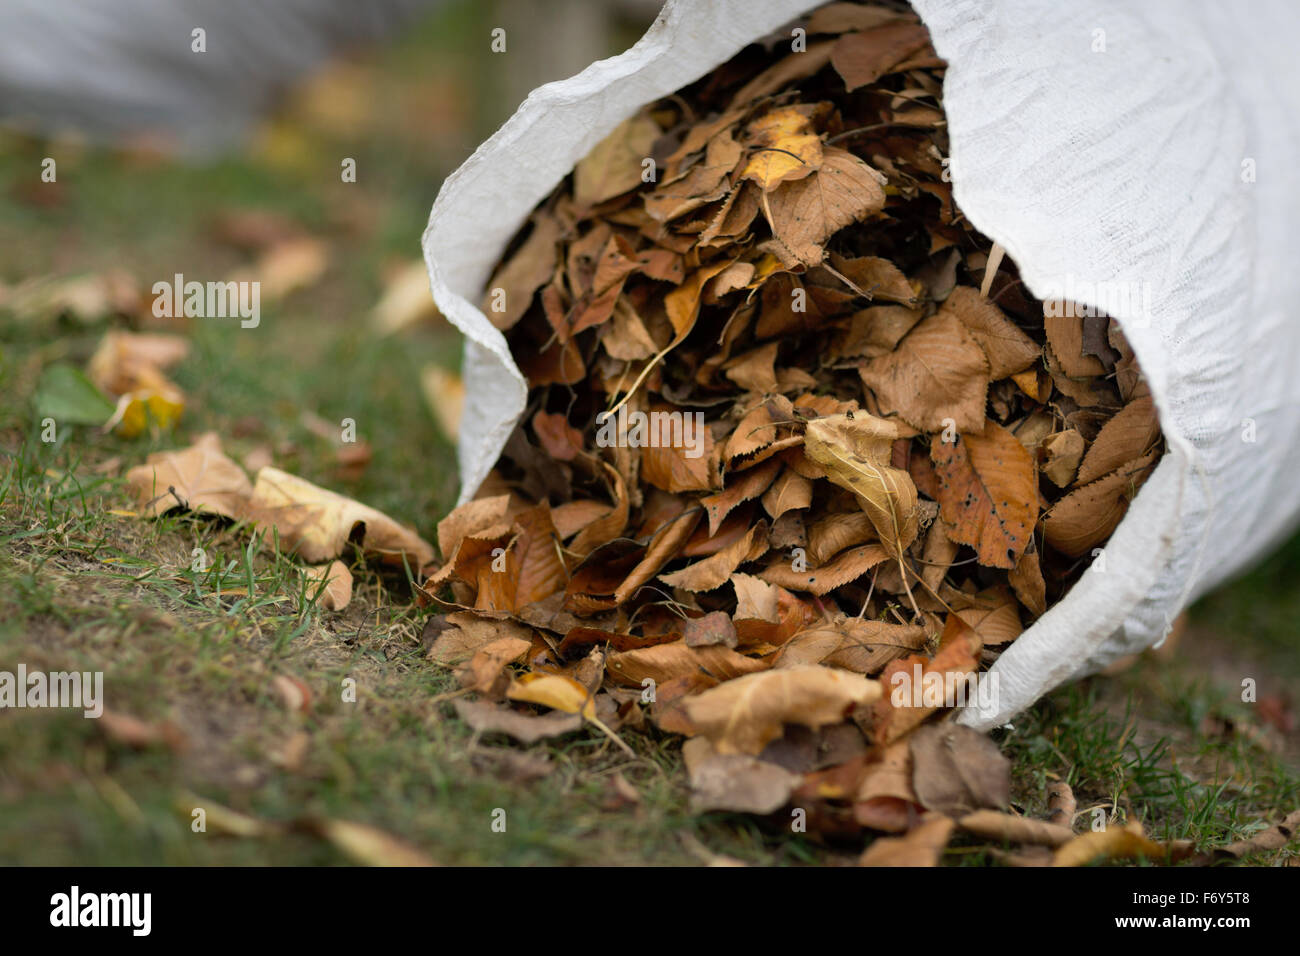 Bag full of dry Autumn leaves - Stock Image